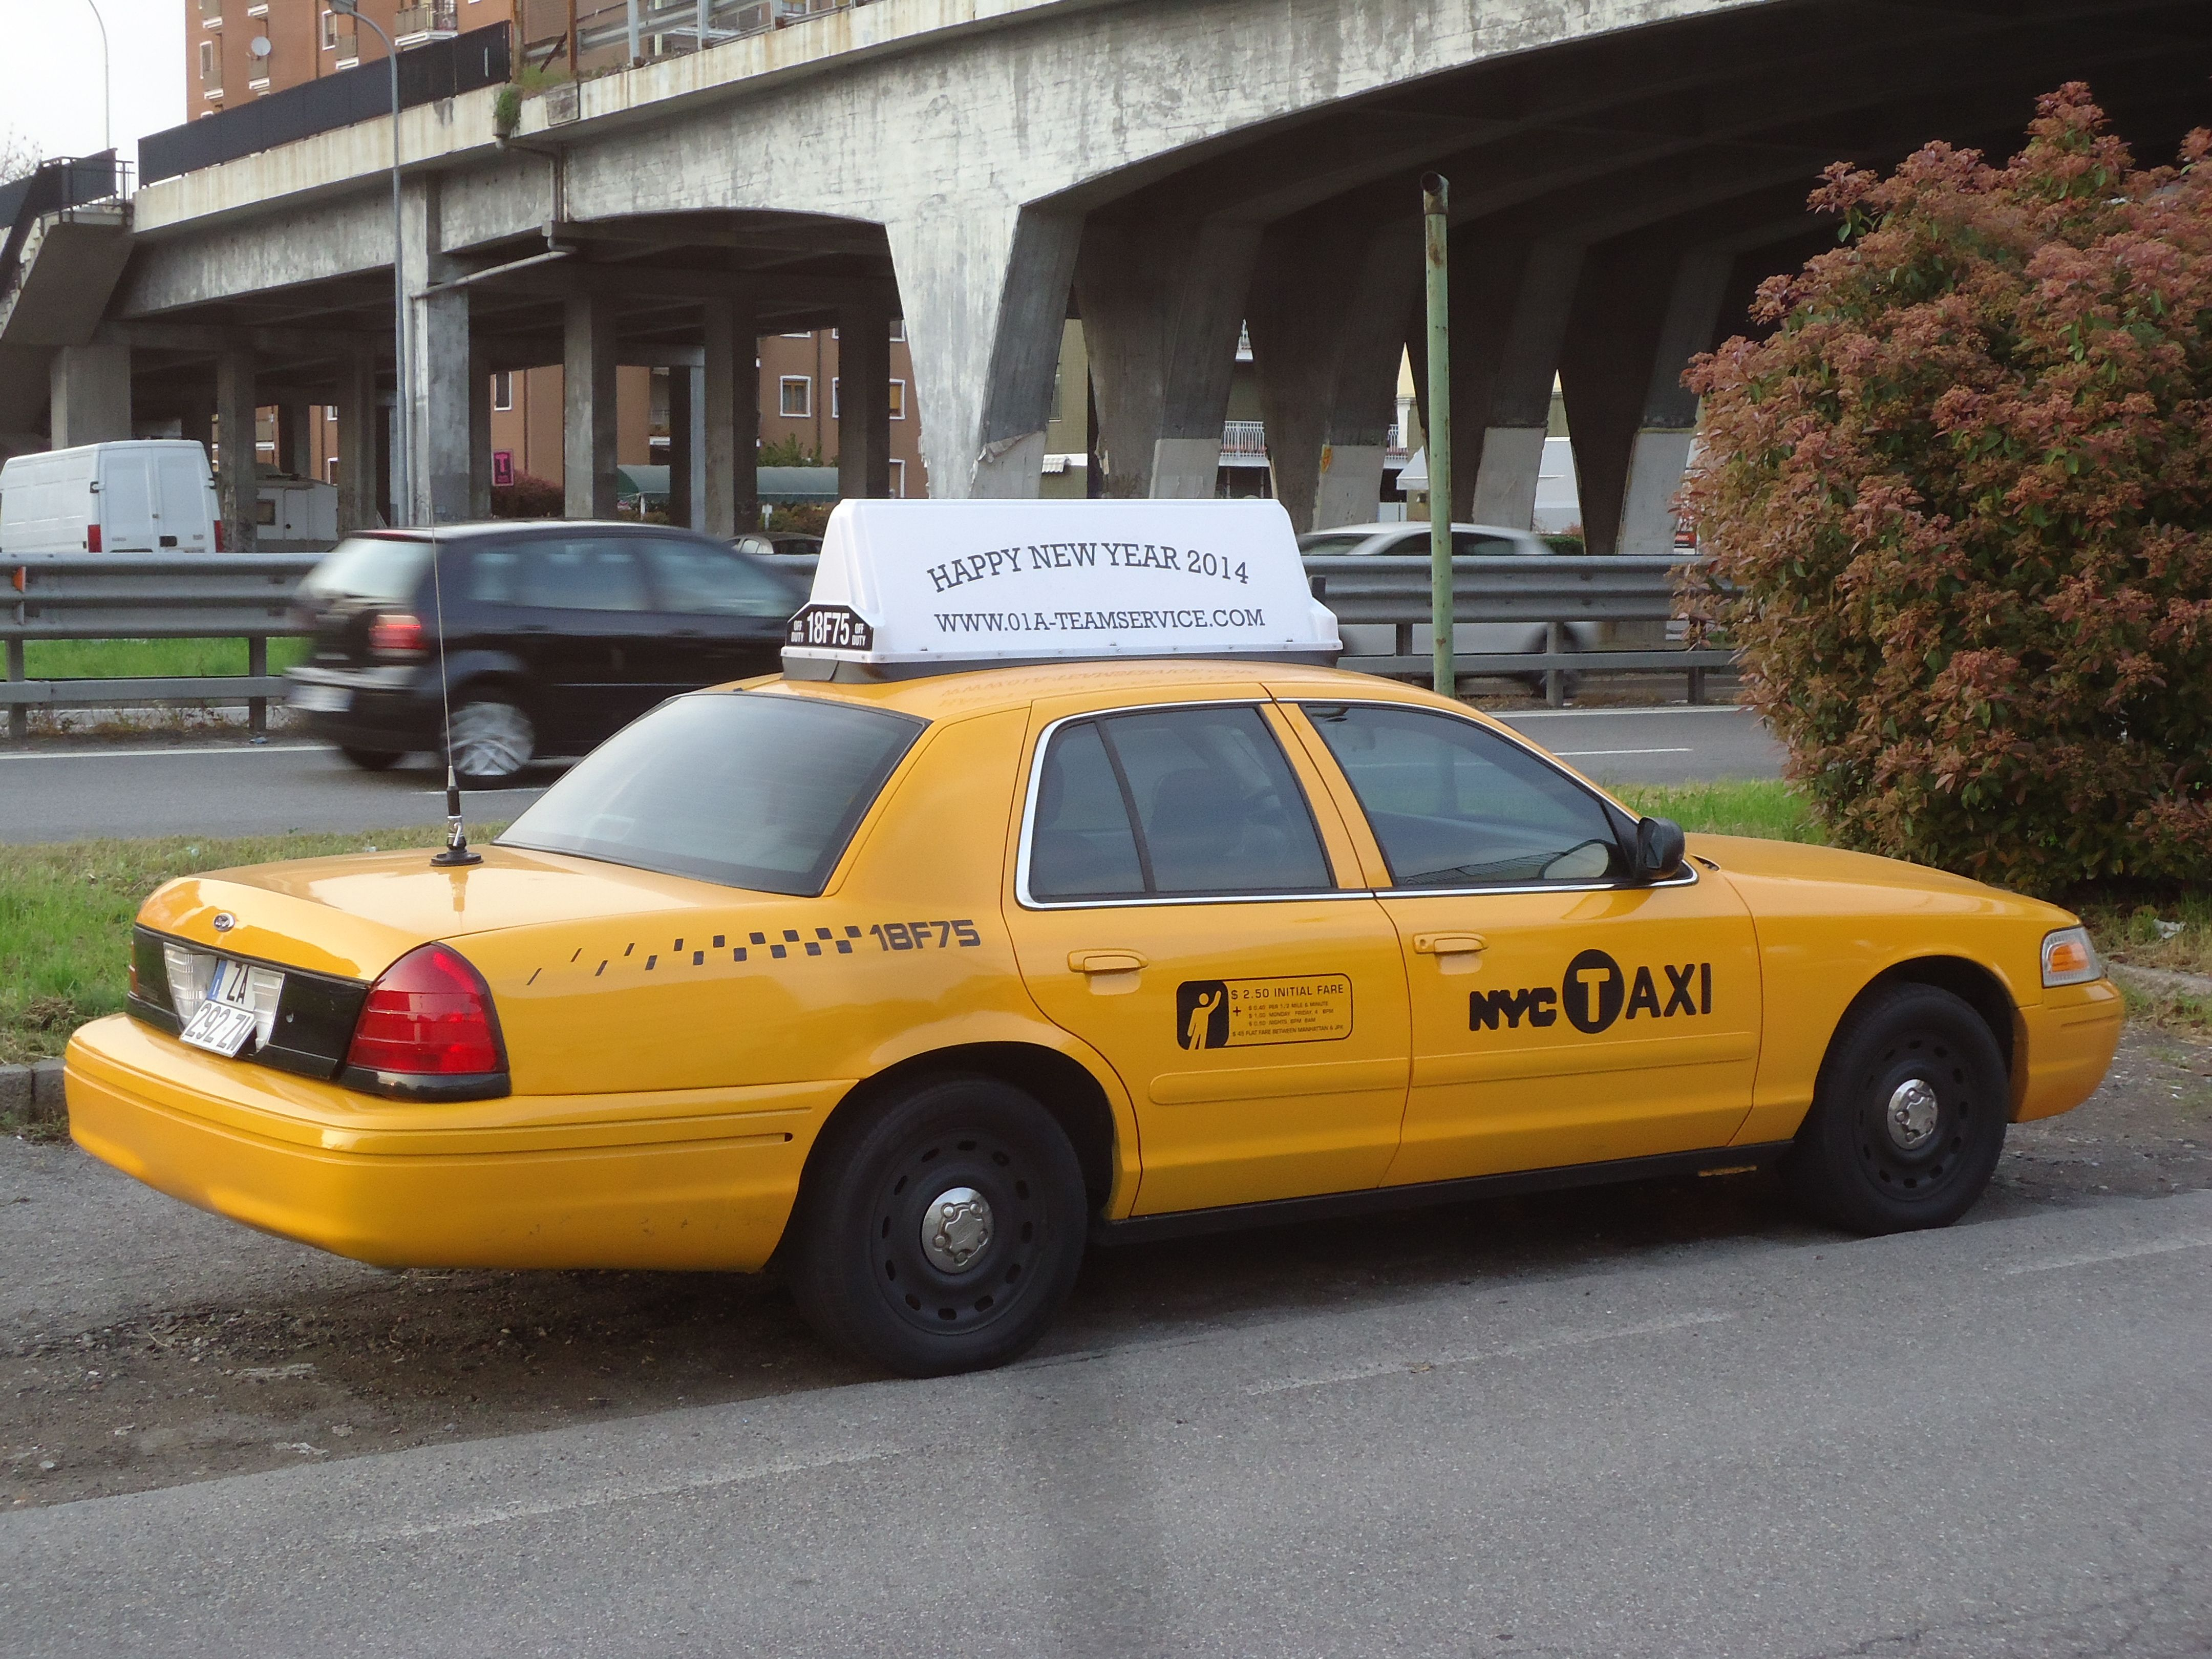 New York Taxi In Milano By Www 01a Teamservice Com